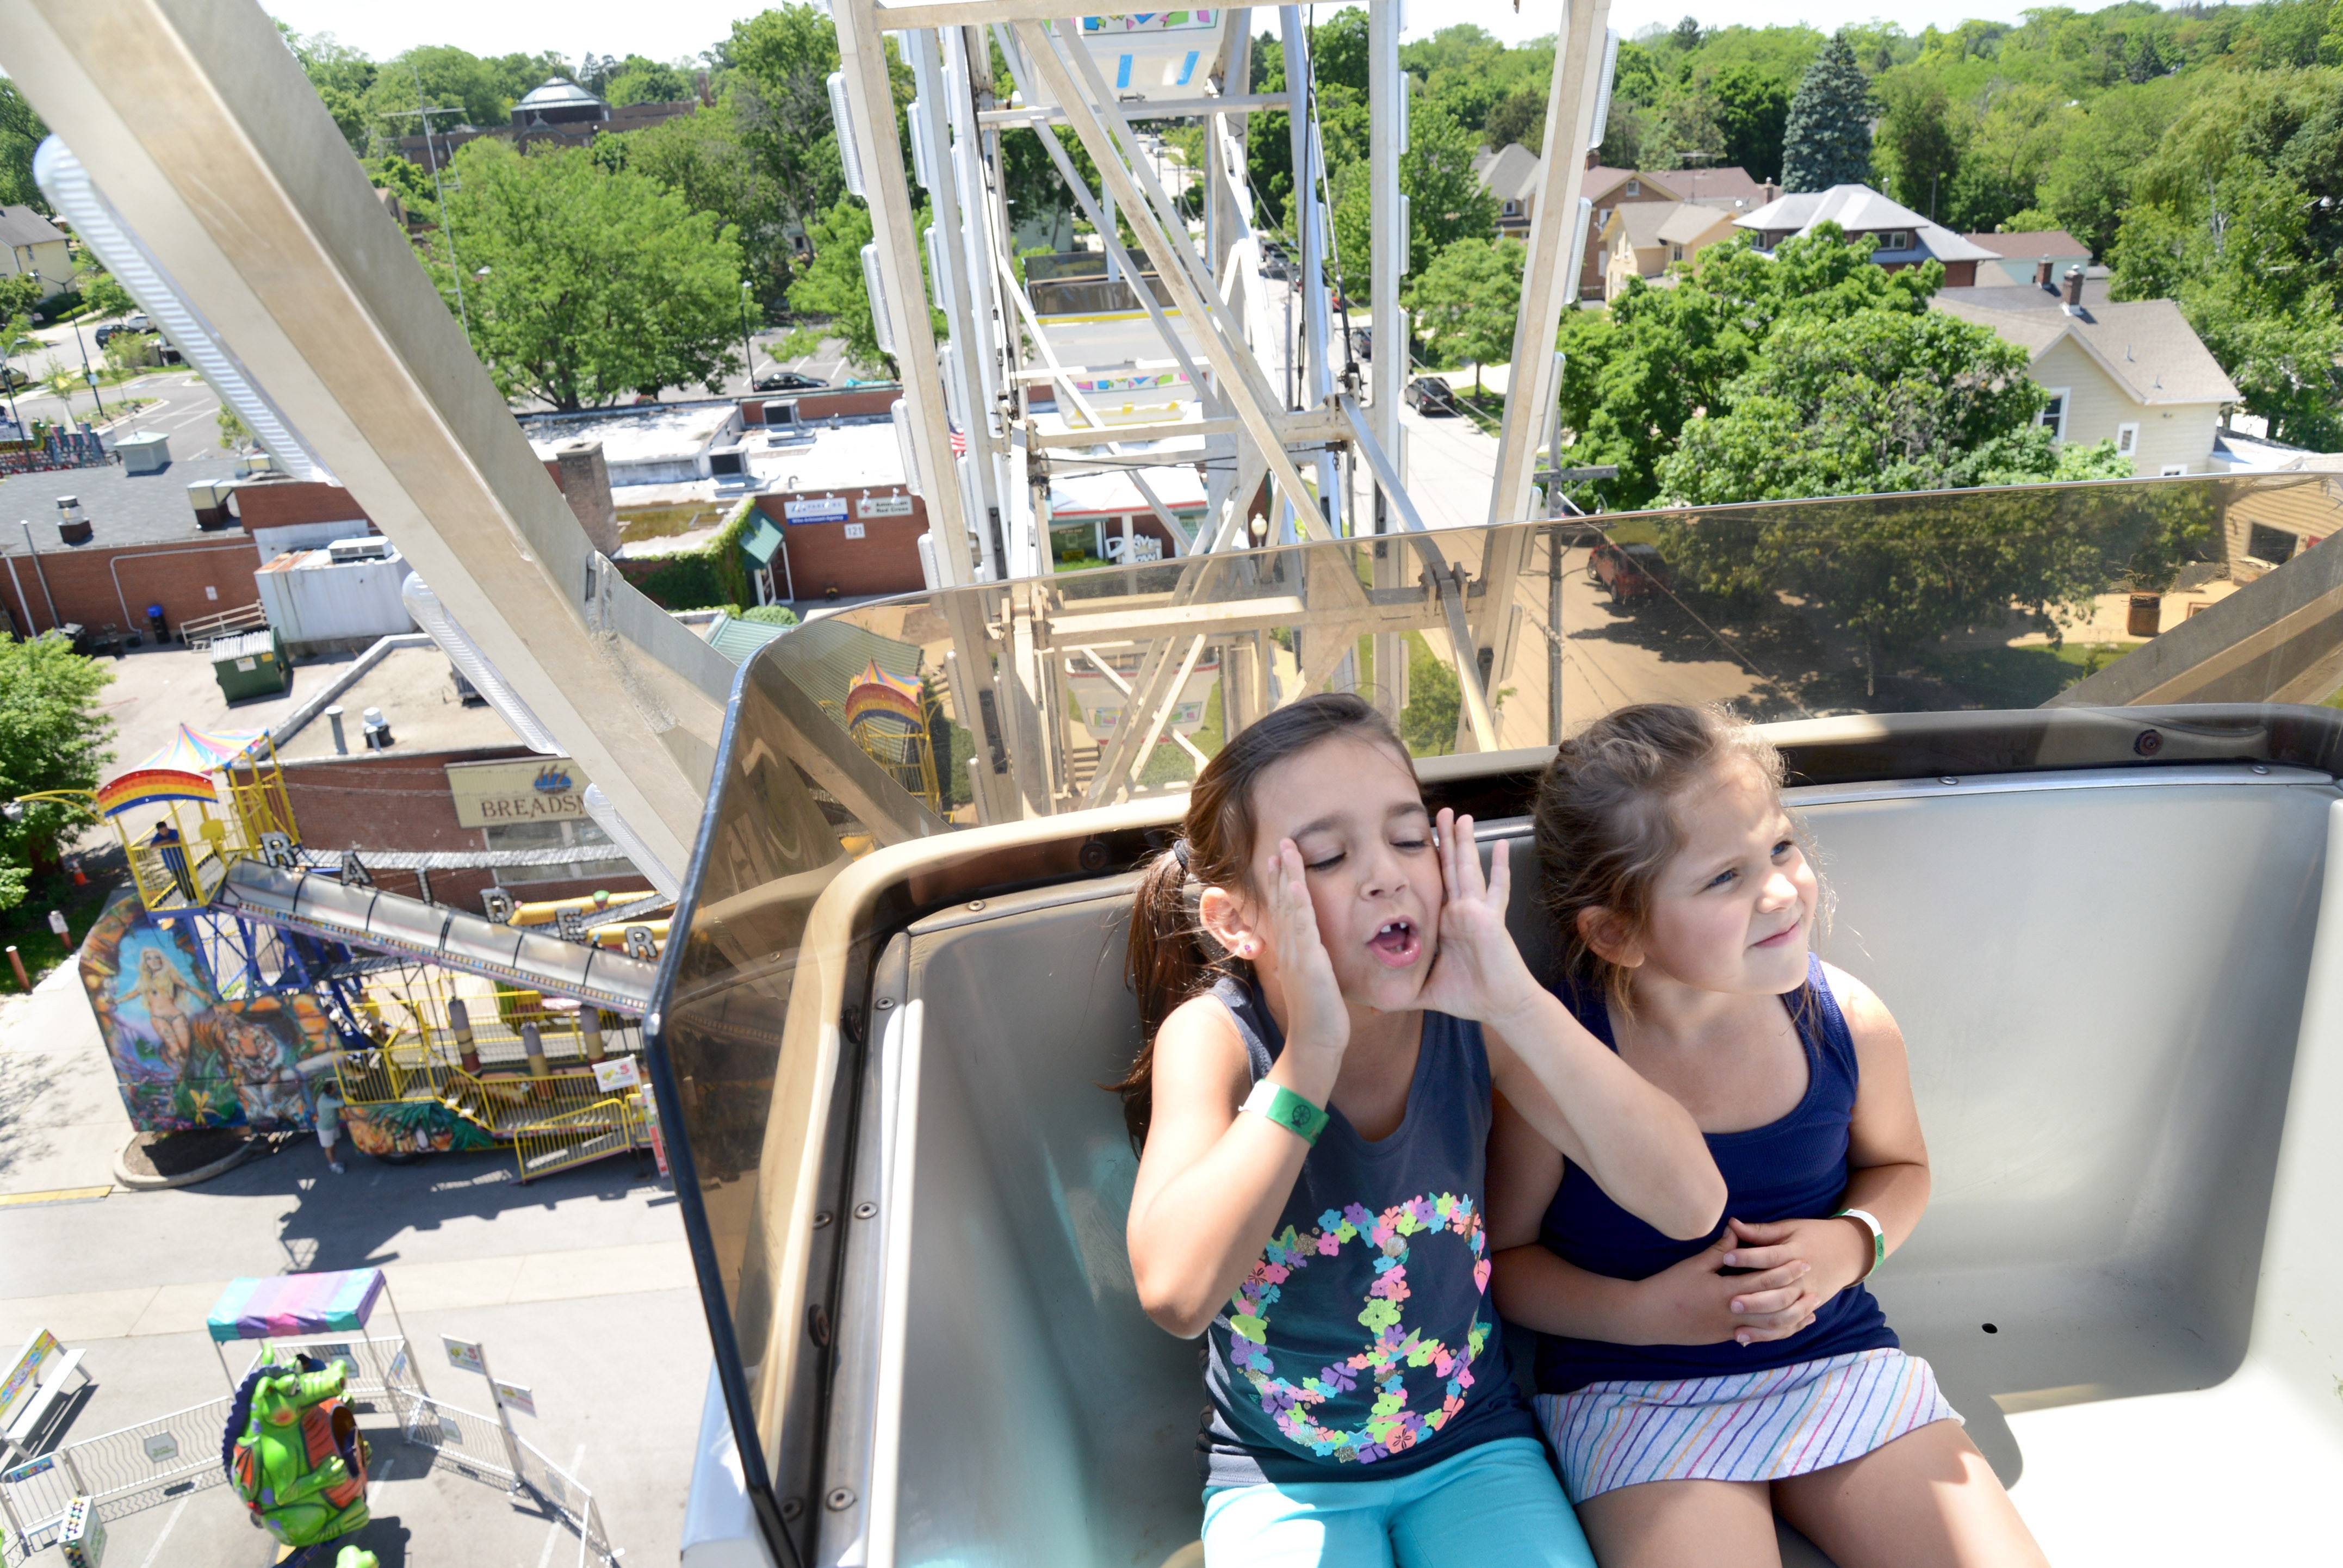 "Ava Skwierawski, 6, of South Elgin, lets out a ""whoo hoo!"" from the top of the ferris wheel during the first day of the carnival in downtown St. Charles on Thursday. Her friend, Gabriella Tayfel, 5, of Bloomingdale, wasn't feeling the same excitement for the ride. Roller coasters are more her style. The carnival opening kicked off the start of the town's RiverFest weekend, and the girls took advantage of the unlimited rides $25 wristband special from 1-5pm."